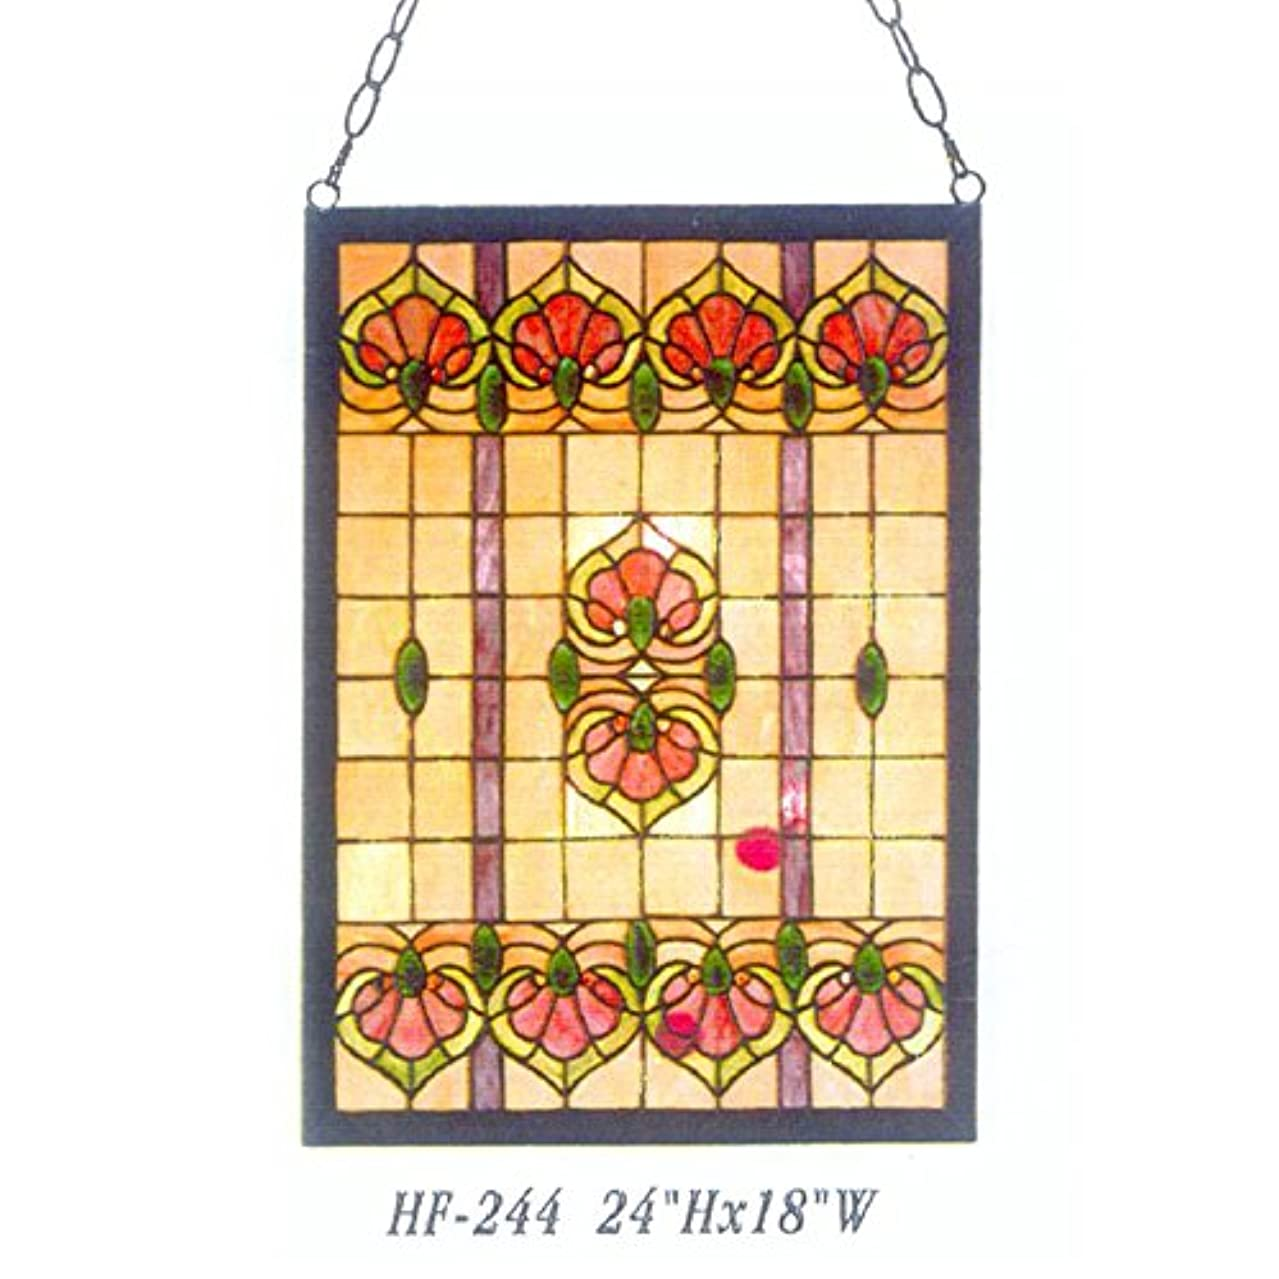 HDO Glass Panels HF-244 Vintage Tiffany Style Handmade Stained Glass Church Art Window Hanging Glass Panel Suncatcher, 24